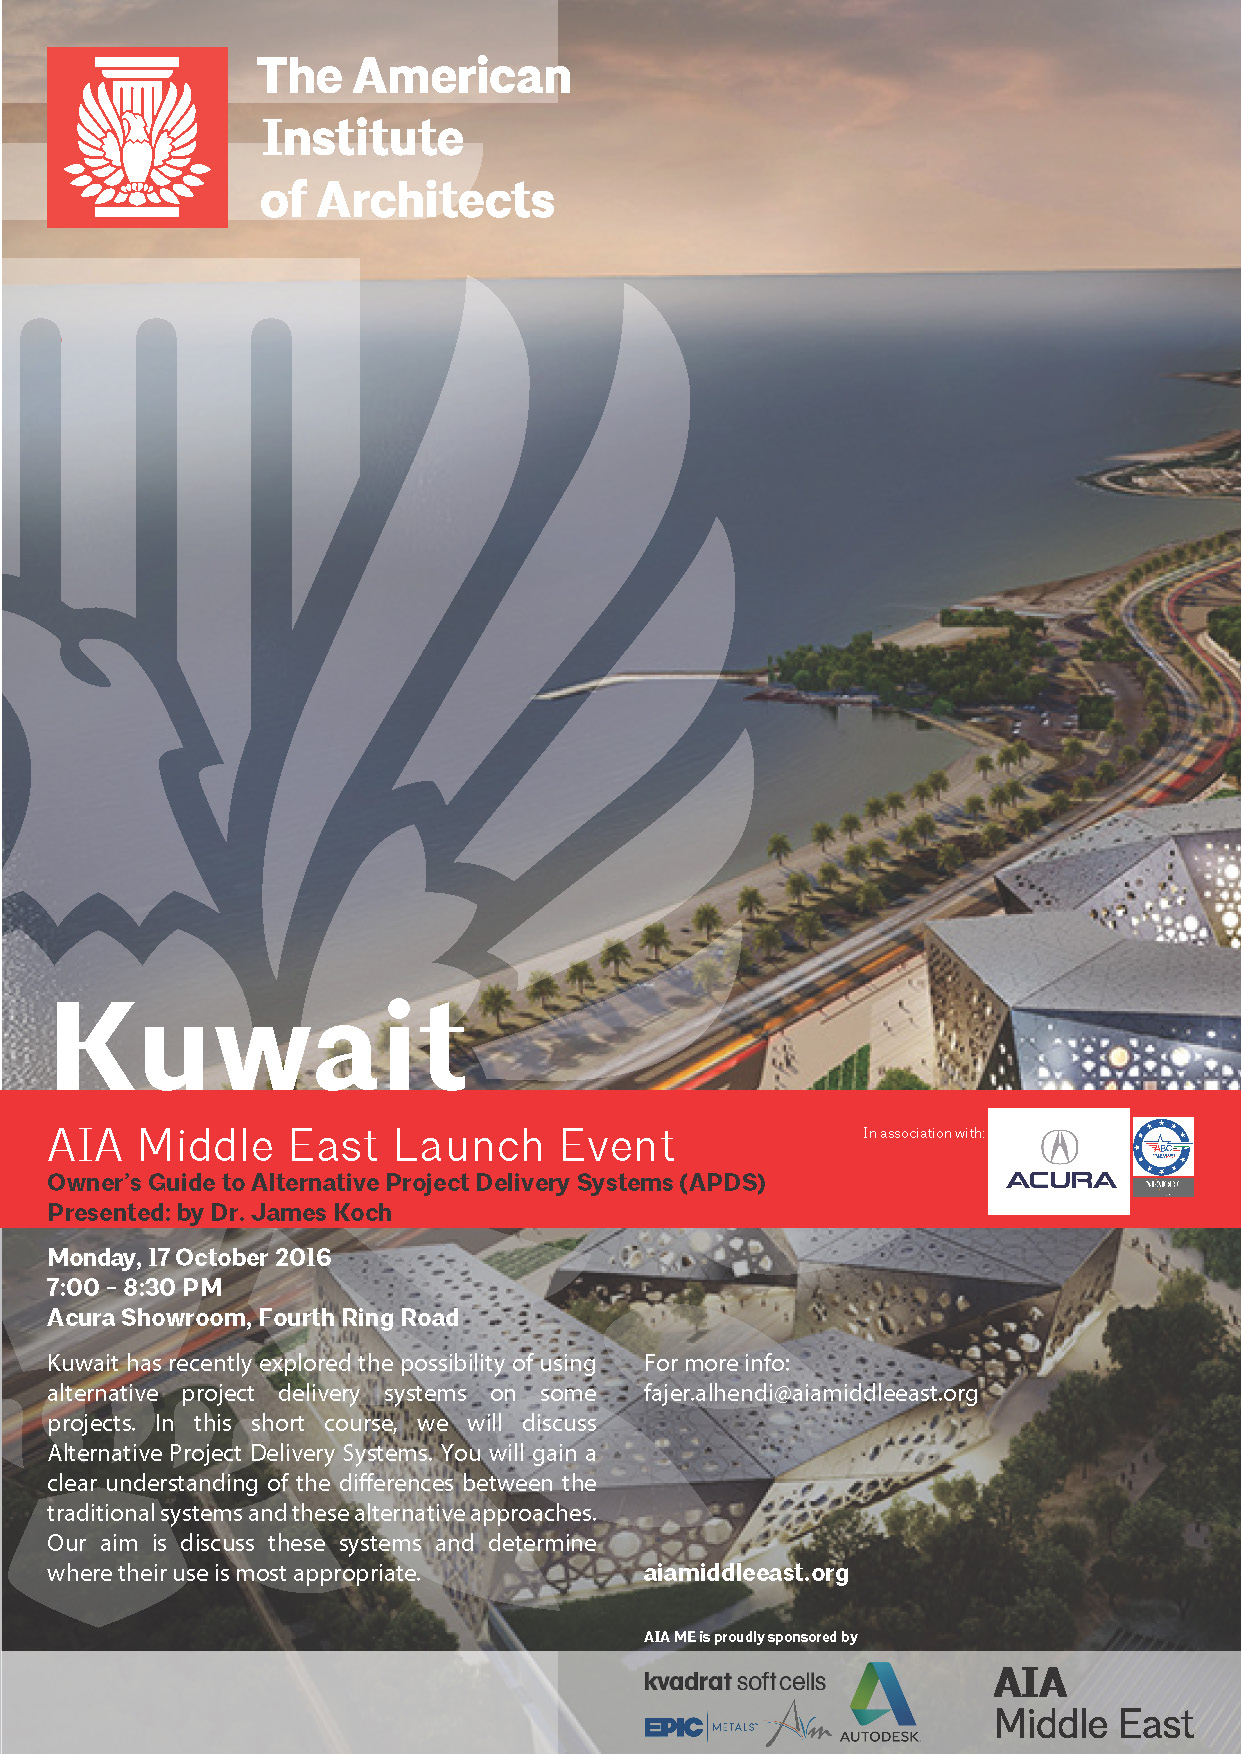 KUWAIT | Alternative Project Delivery Systems (APDS) — AIA Middle East